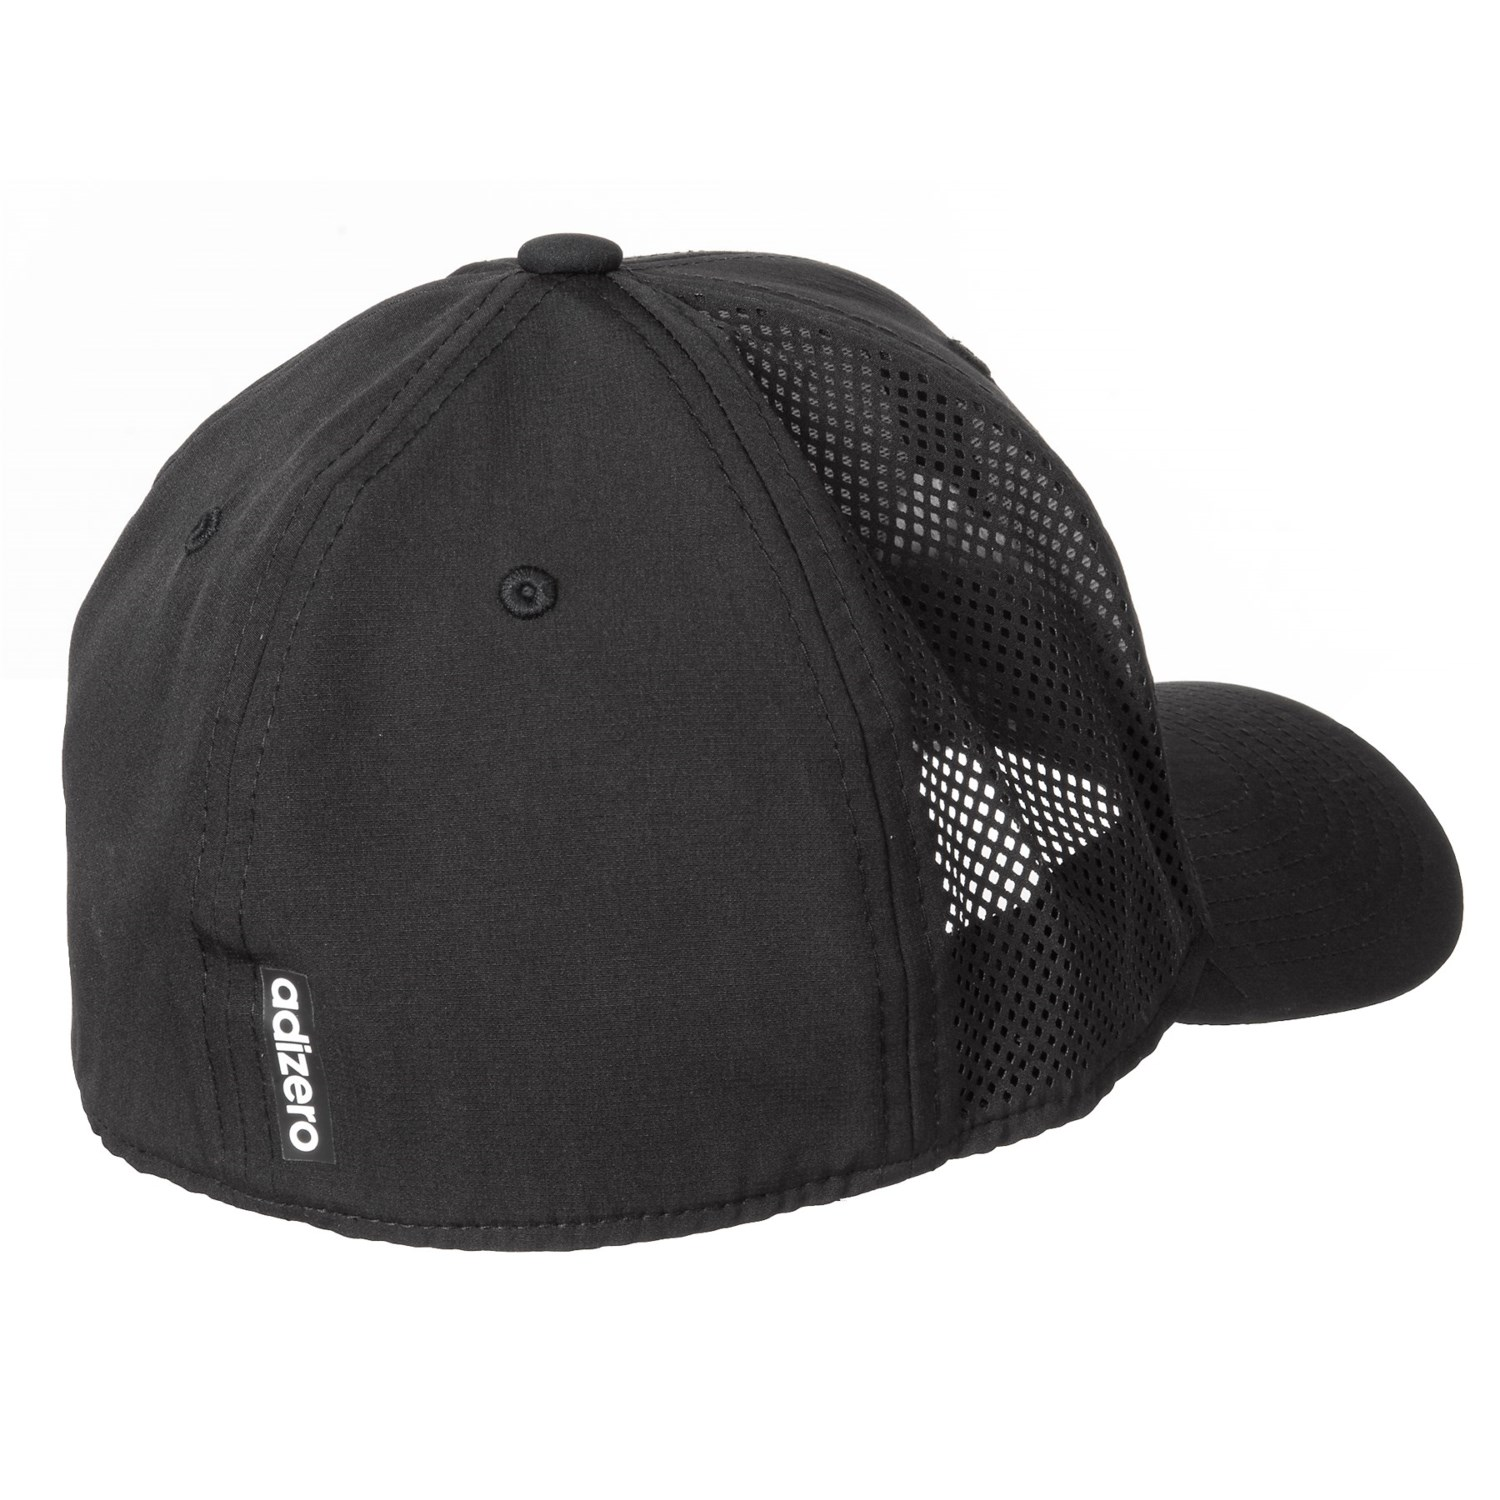 f7147fd9e27 adidas Adizero Scrimmage Baseball Cap (For Men) - Save 23%